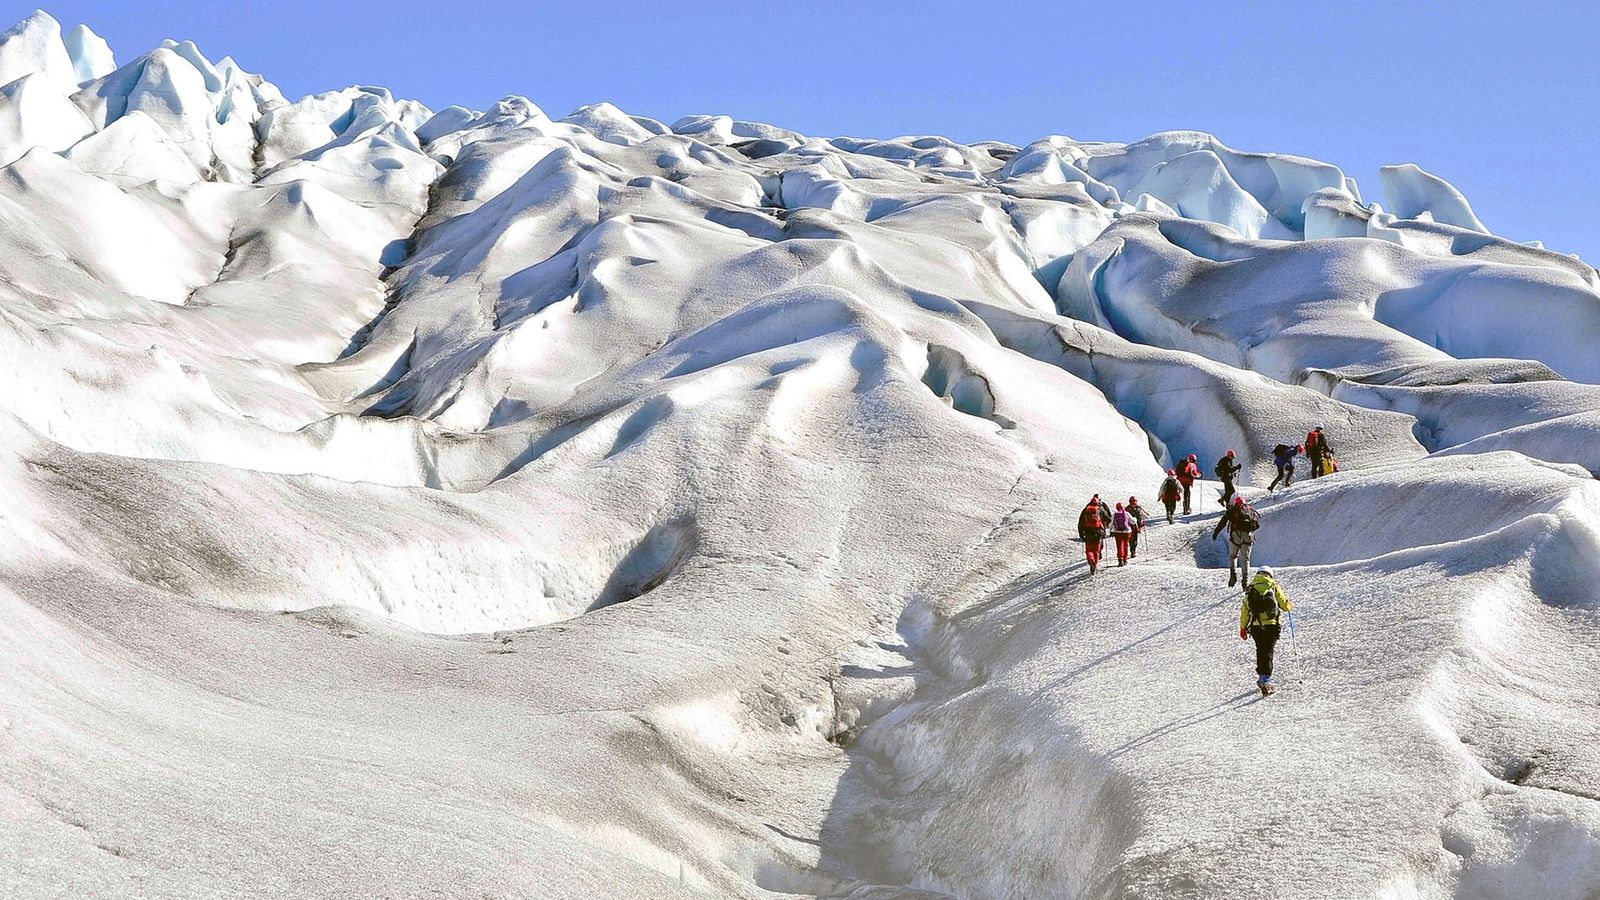 Glacier walking, such as that on Qaleraliq, is a true highlight of discovering South Greenland and ...